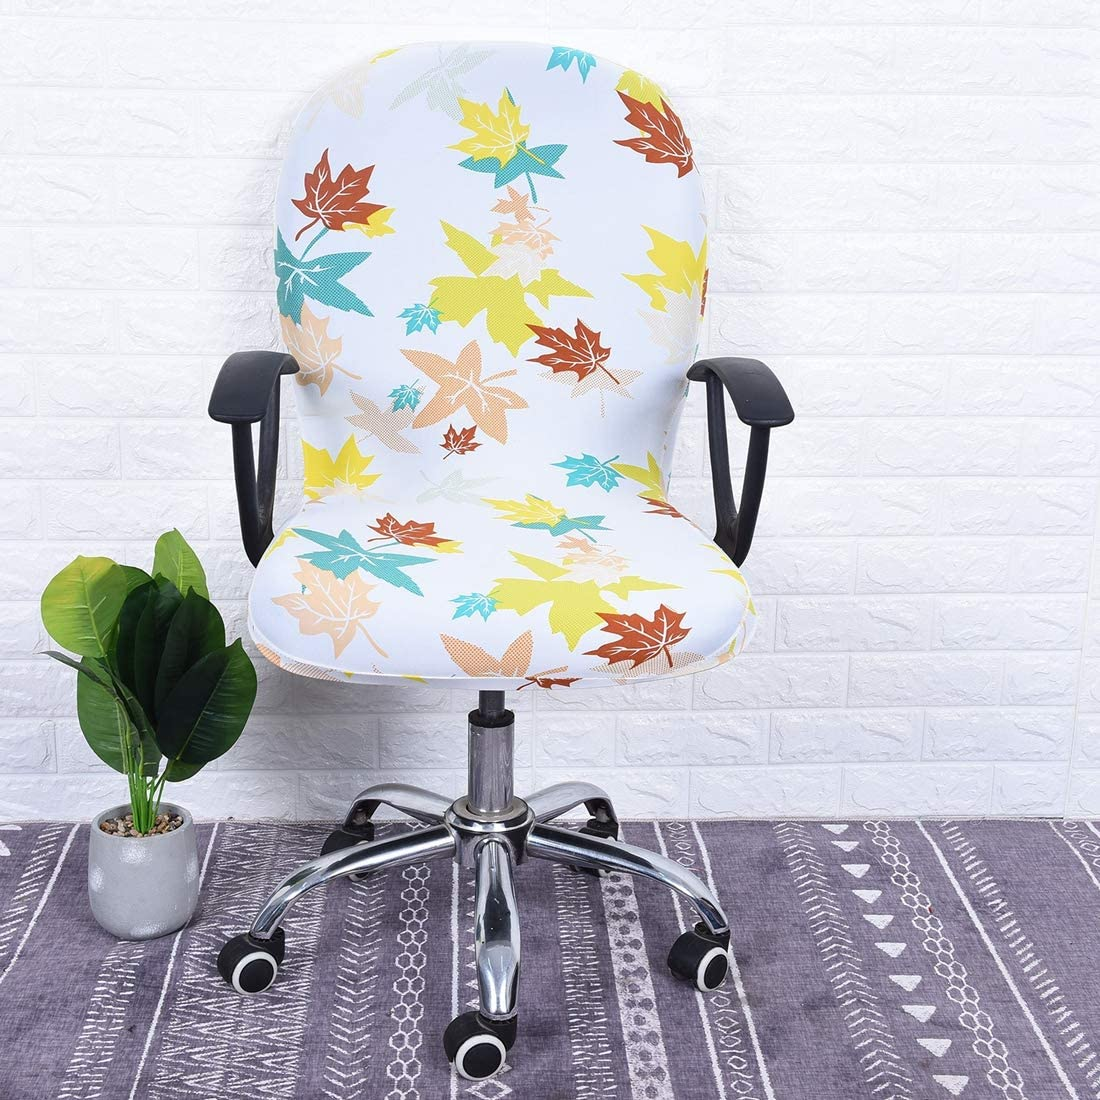 Freahap Chair Cover Stretchable Removable Computer Office Swivel Chair Cover #7